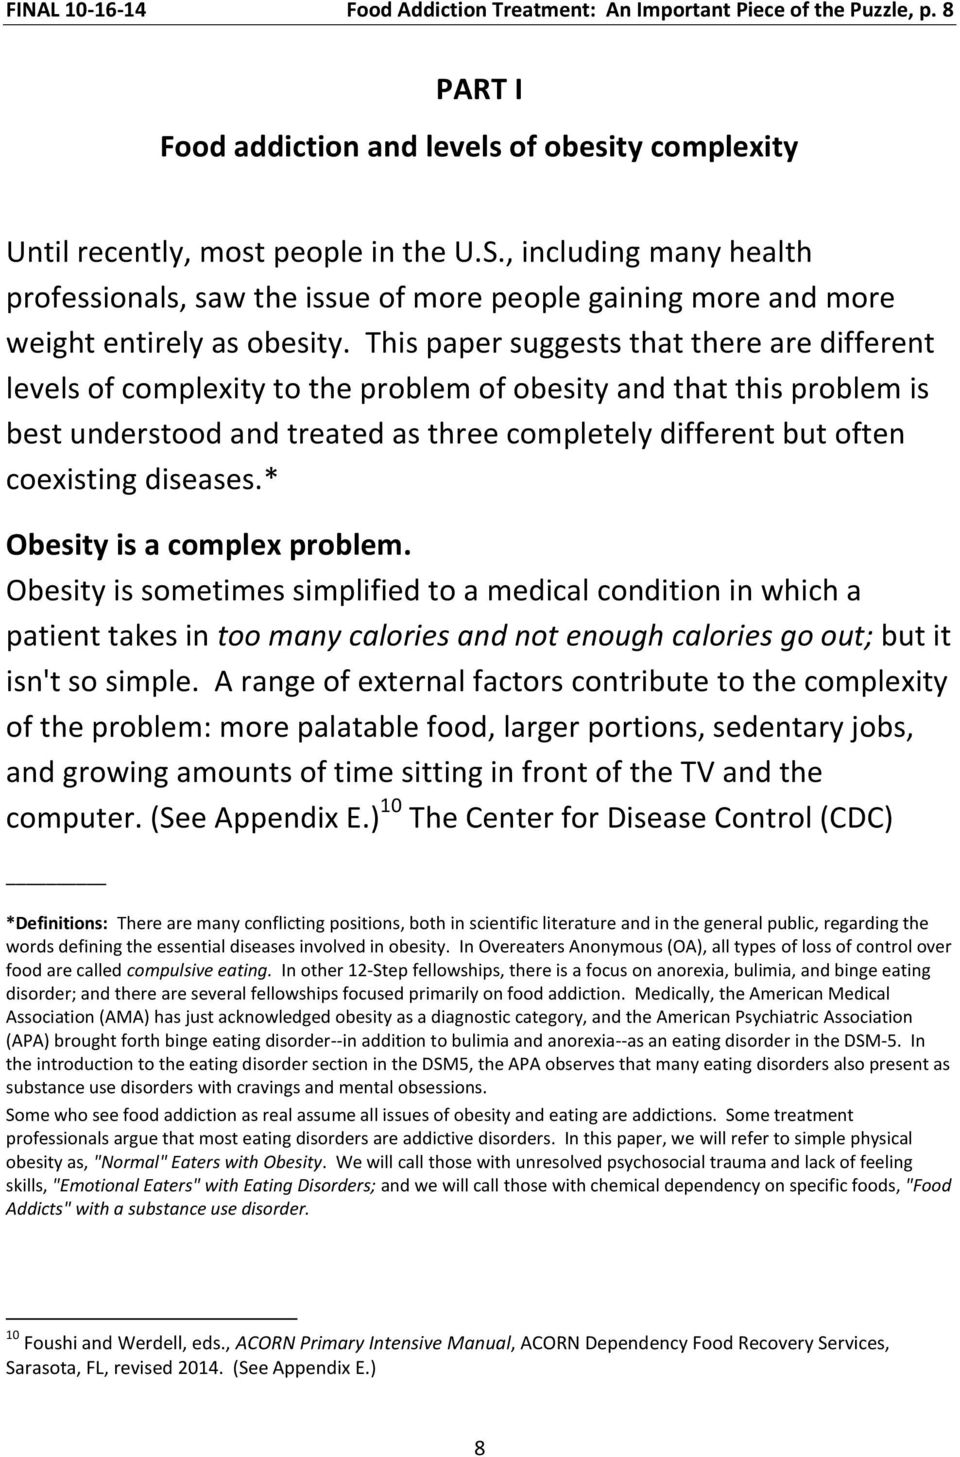 This paper suggests that there are different levels of complexity to the problem of obesity and that this problem is best understood and treated as three completely different but often coexisting